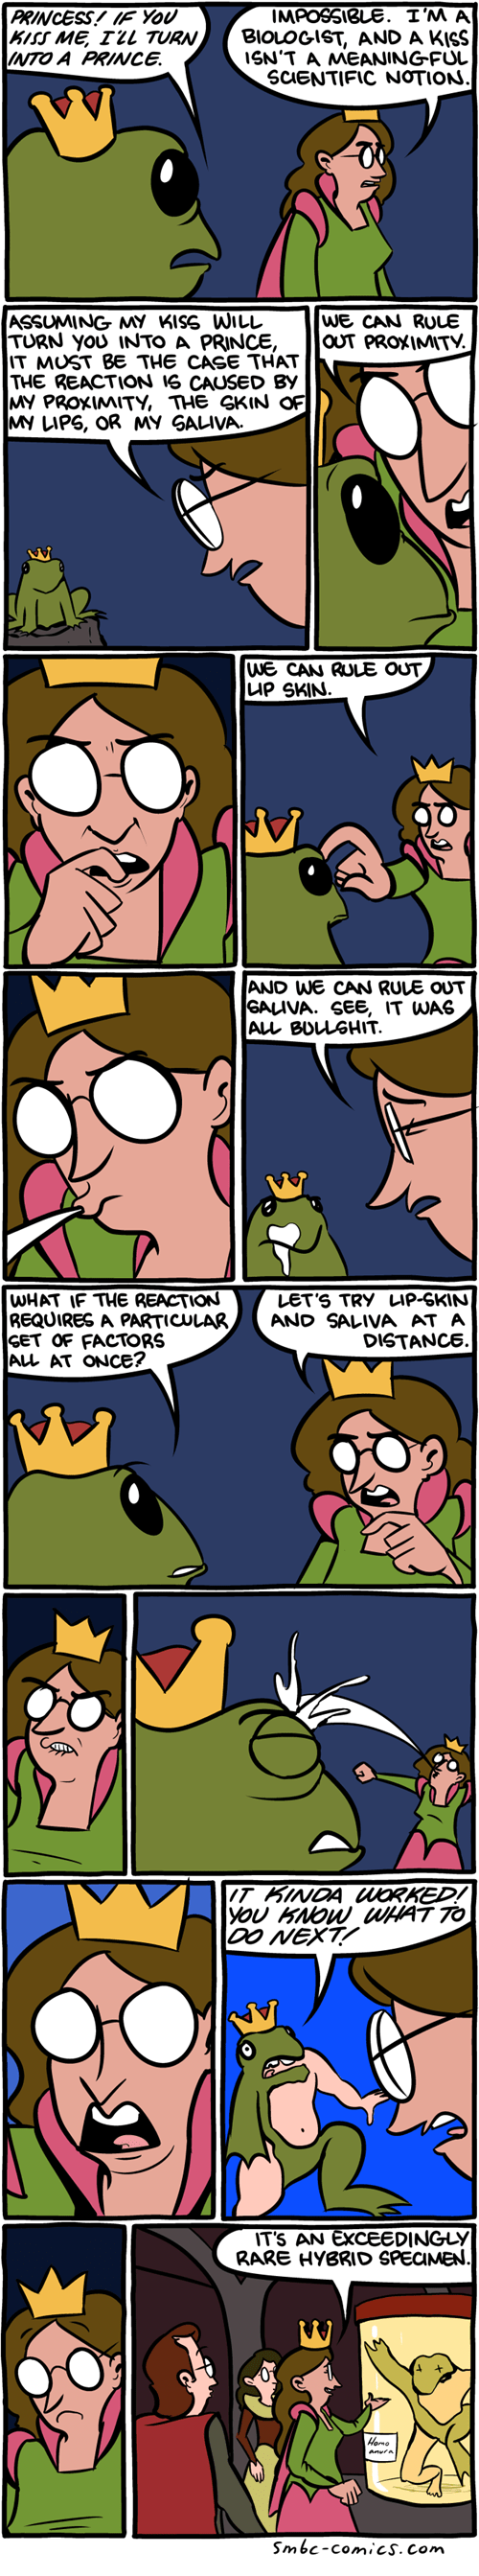 fairy tales frogs science web comics - 8184037376